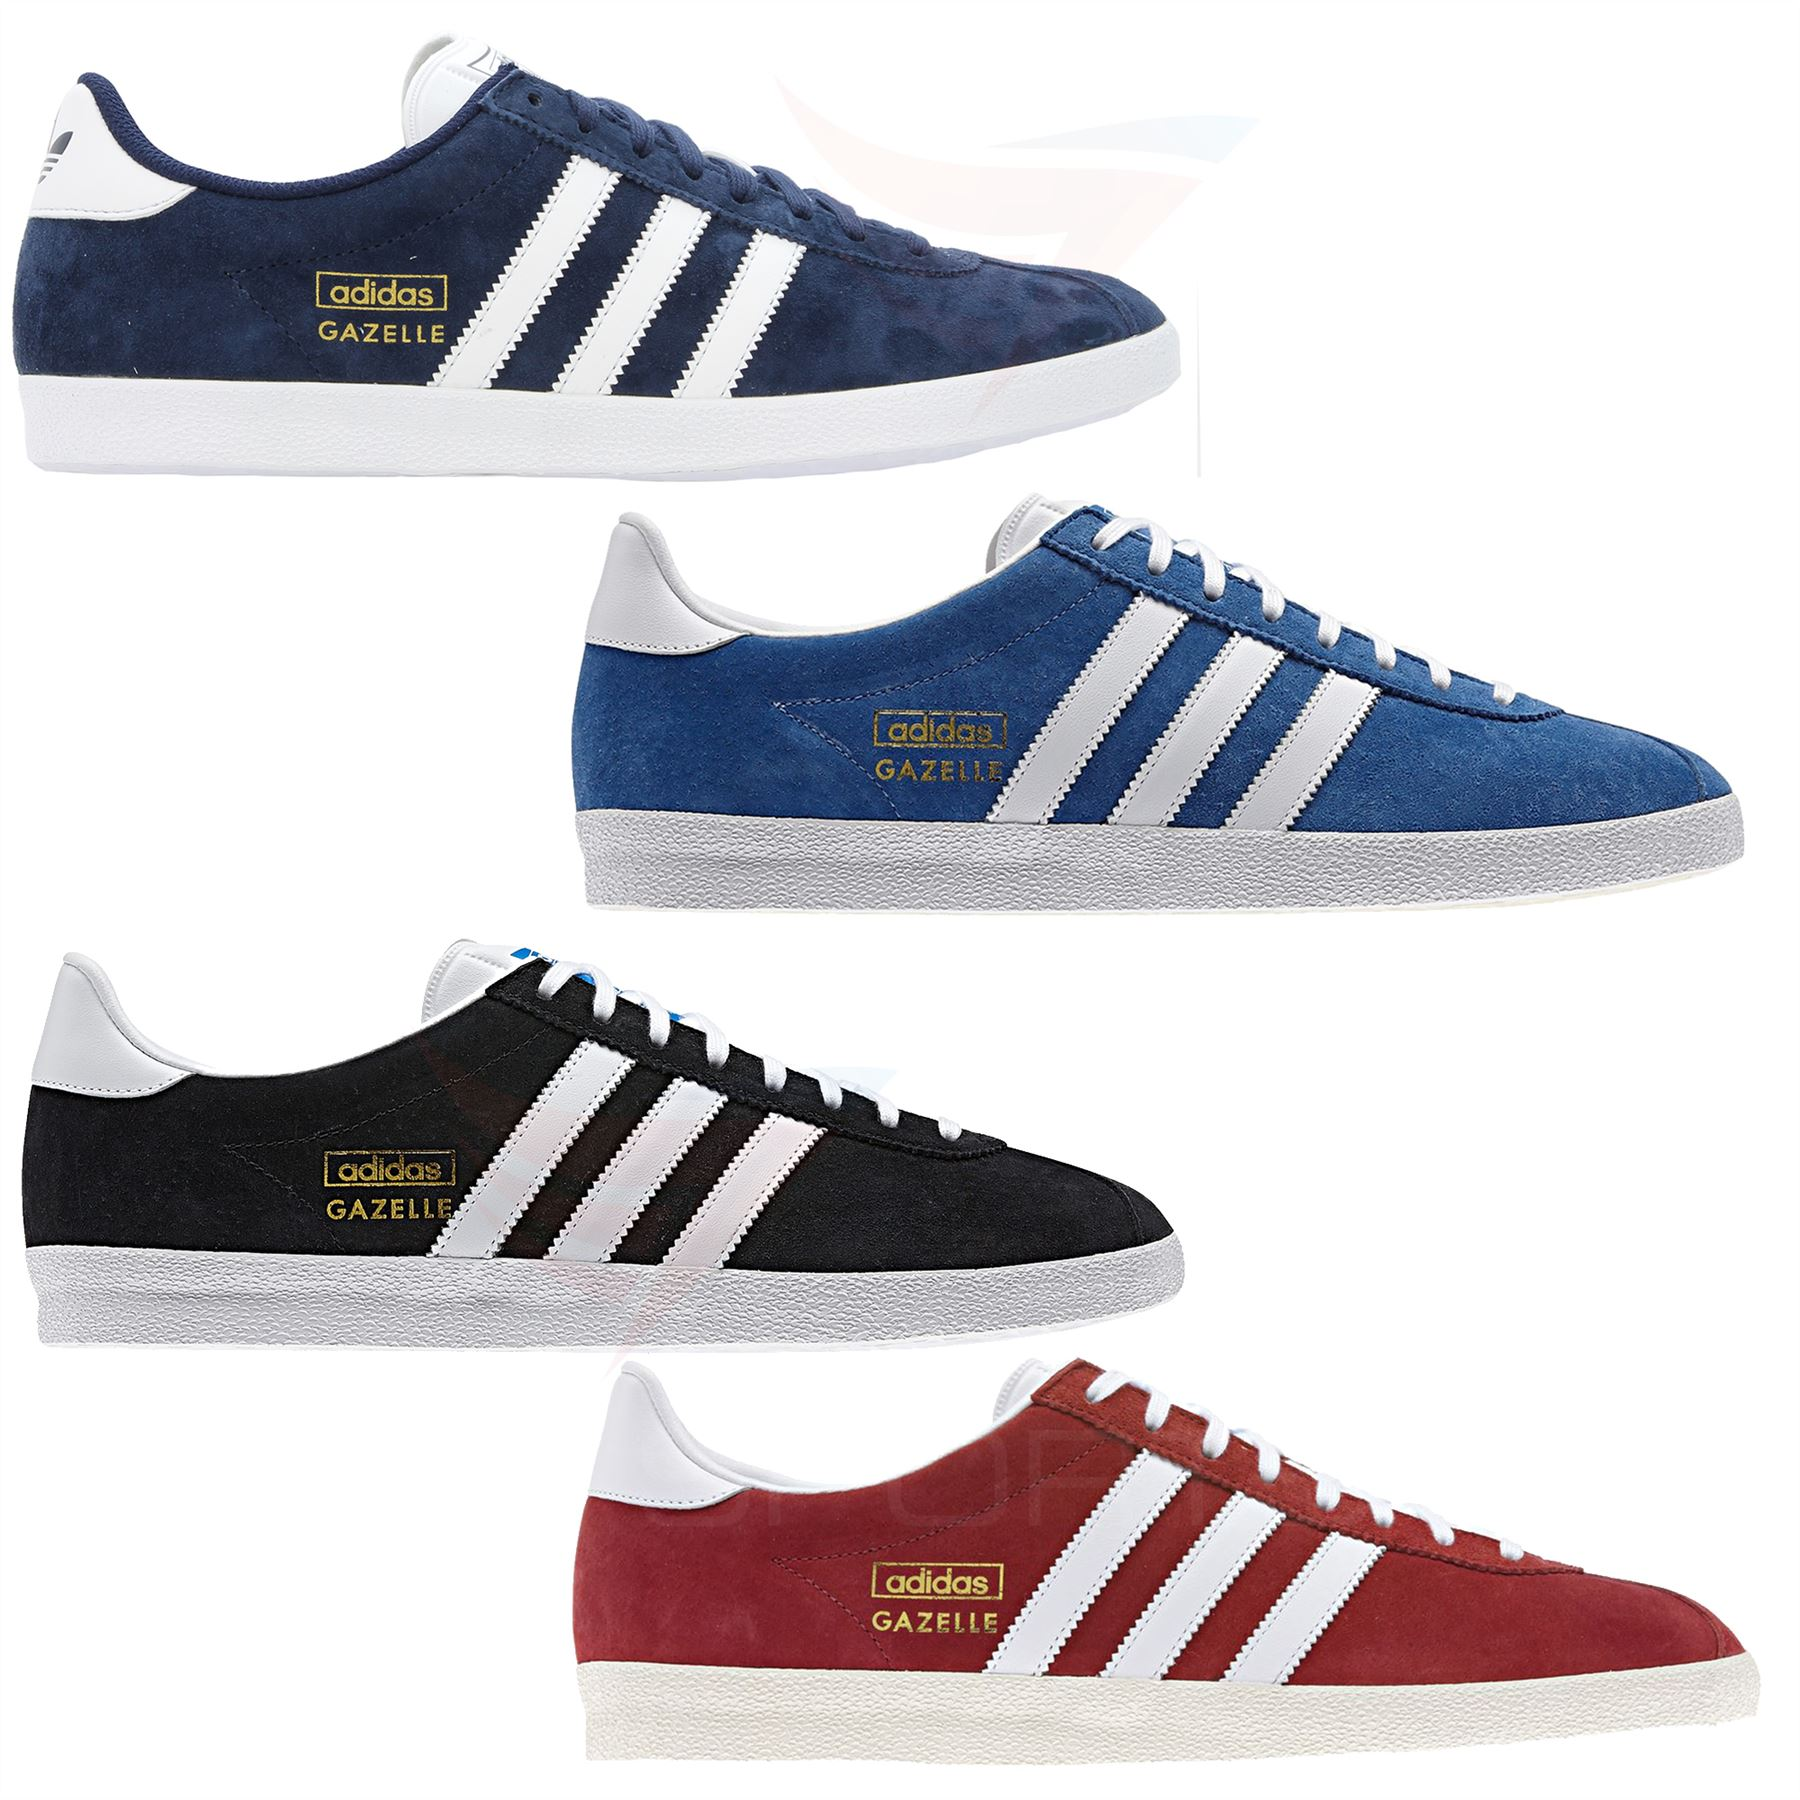 1da1df1b Details about adidas GAZELLE OG TRAINERS SNEAKERS ORIGINALS SUEDE RED BLUE  BLACK NAVY GOLD MEN